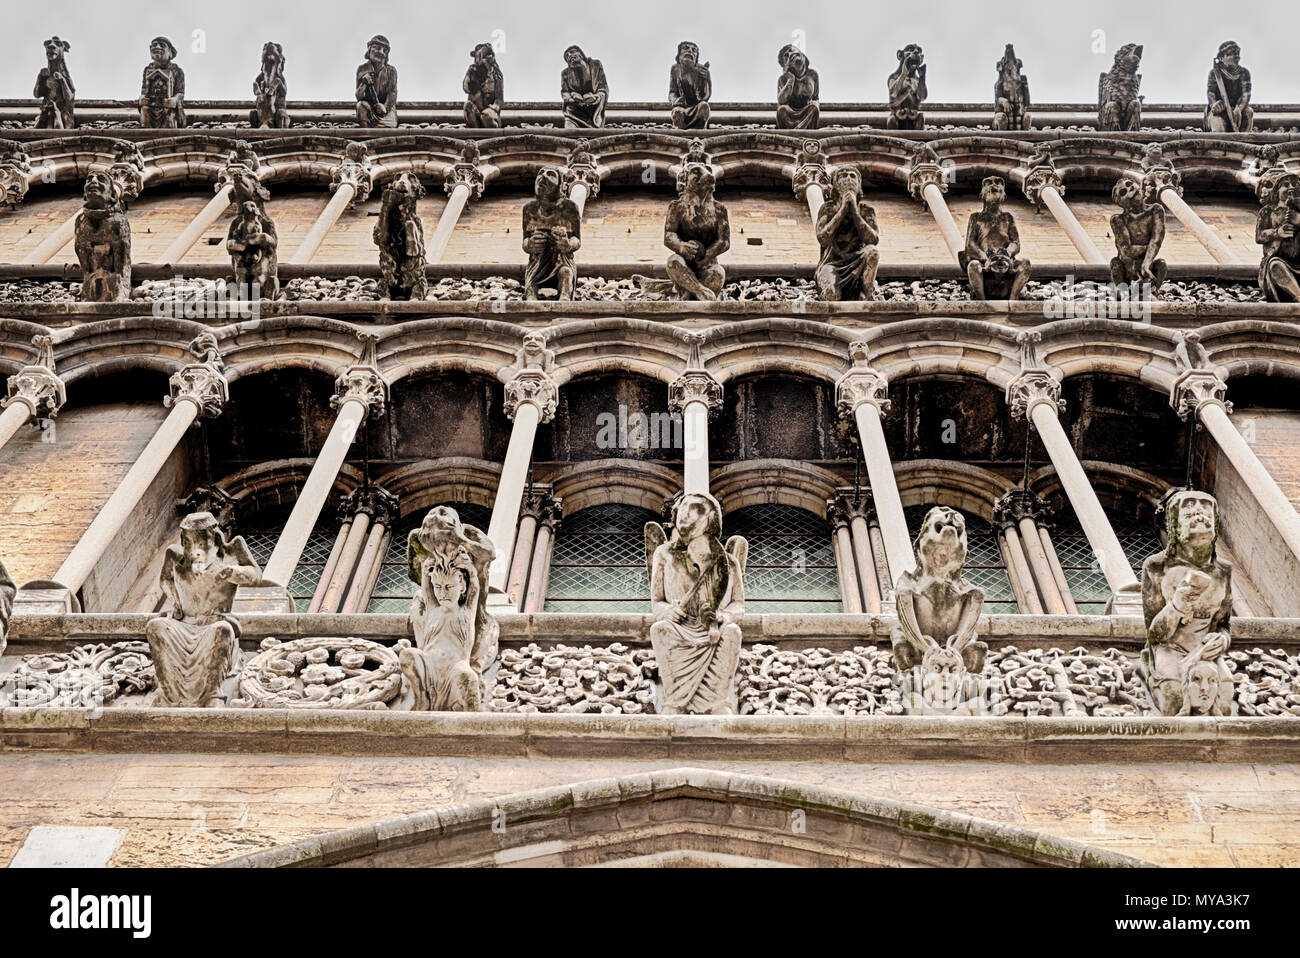 The front facade of the Notre Dame cathedral in Dijon, France, is lined with different gargoyles looking out over the city. - Stock Image